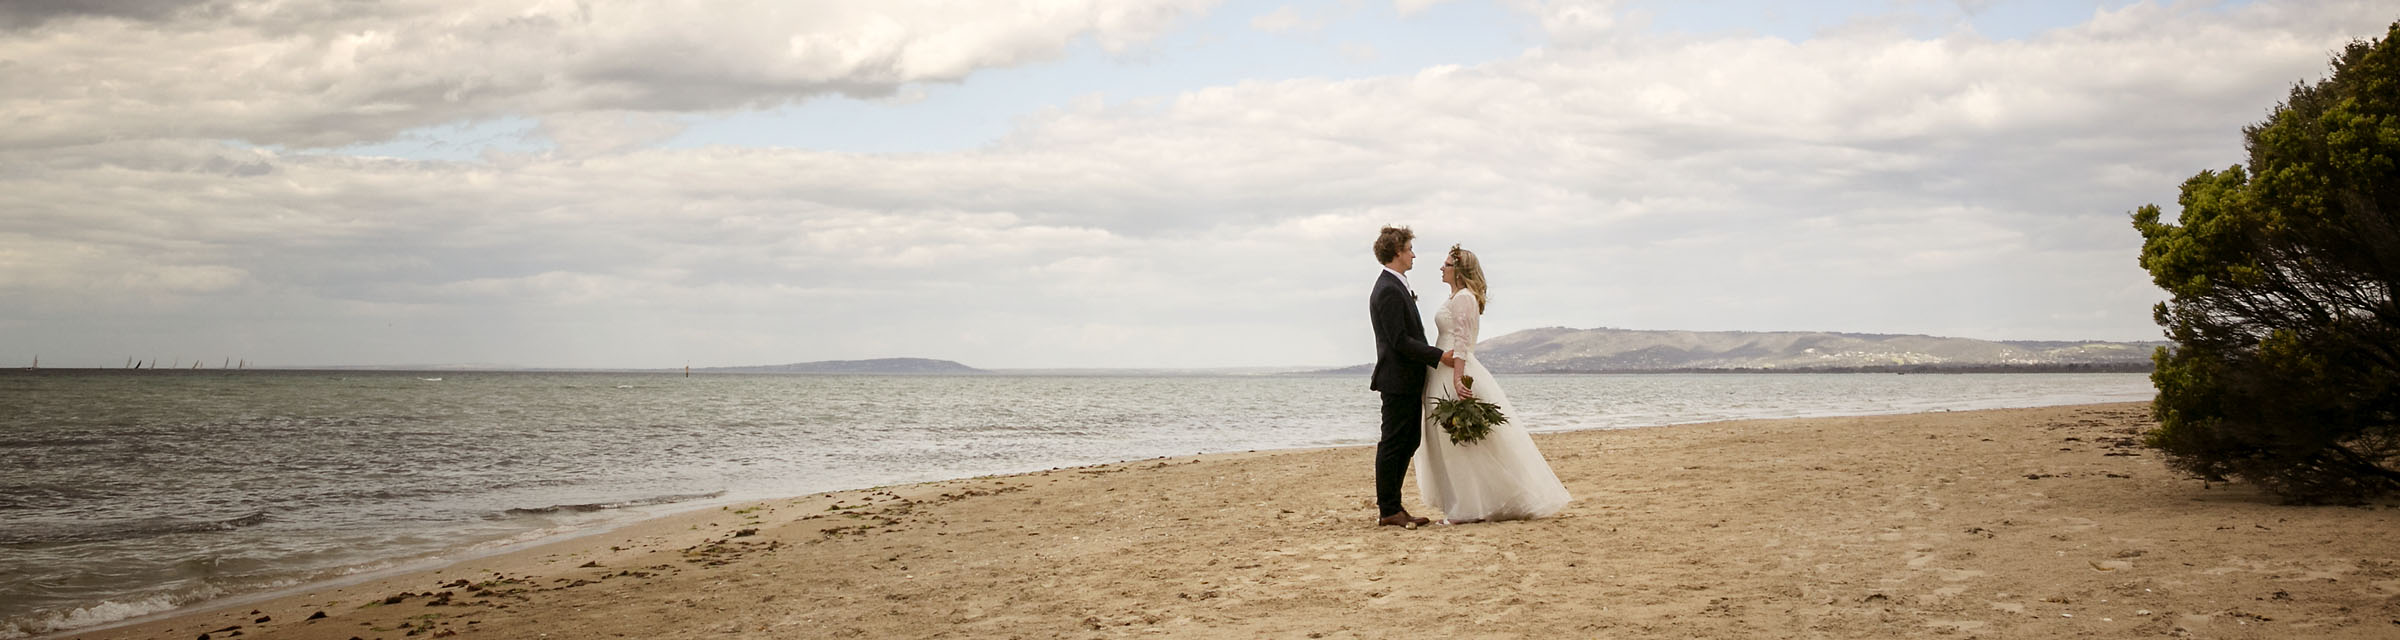 Joanne and Andrew's wedding on Rye Beach